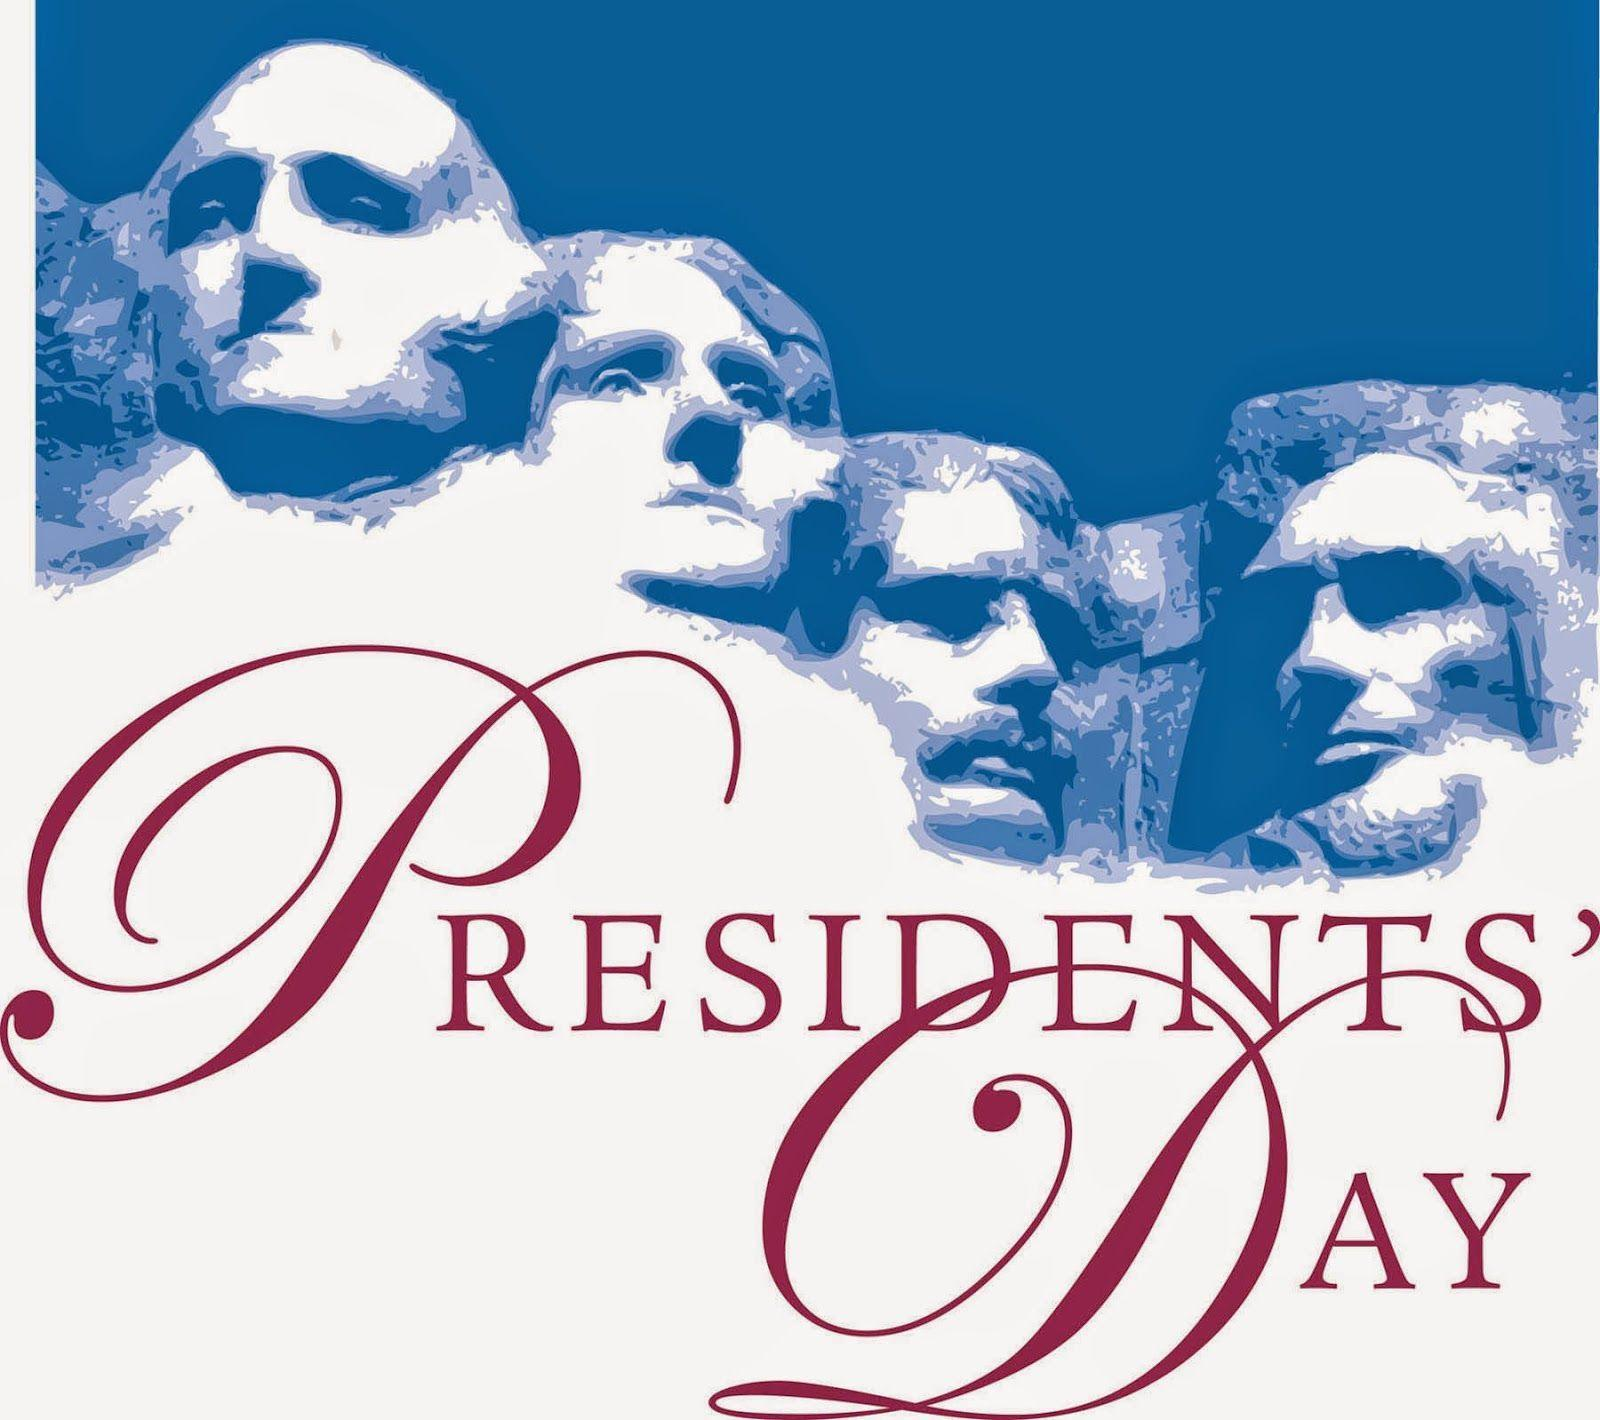 President's Day Wallpaper for Computer - WallpaperSafari